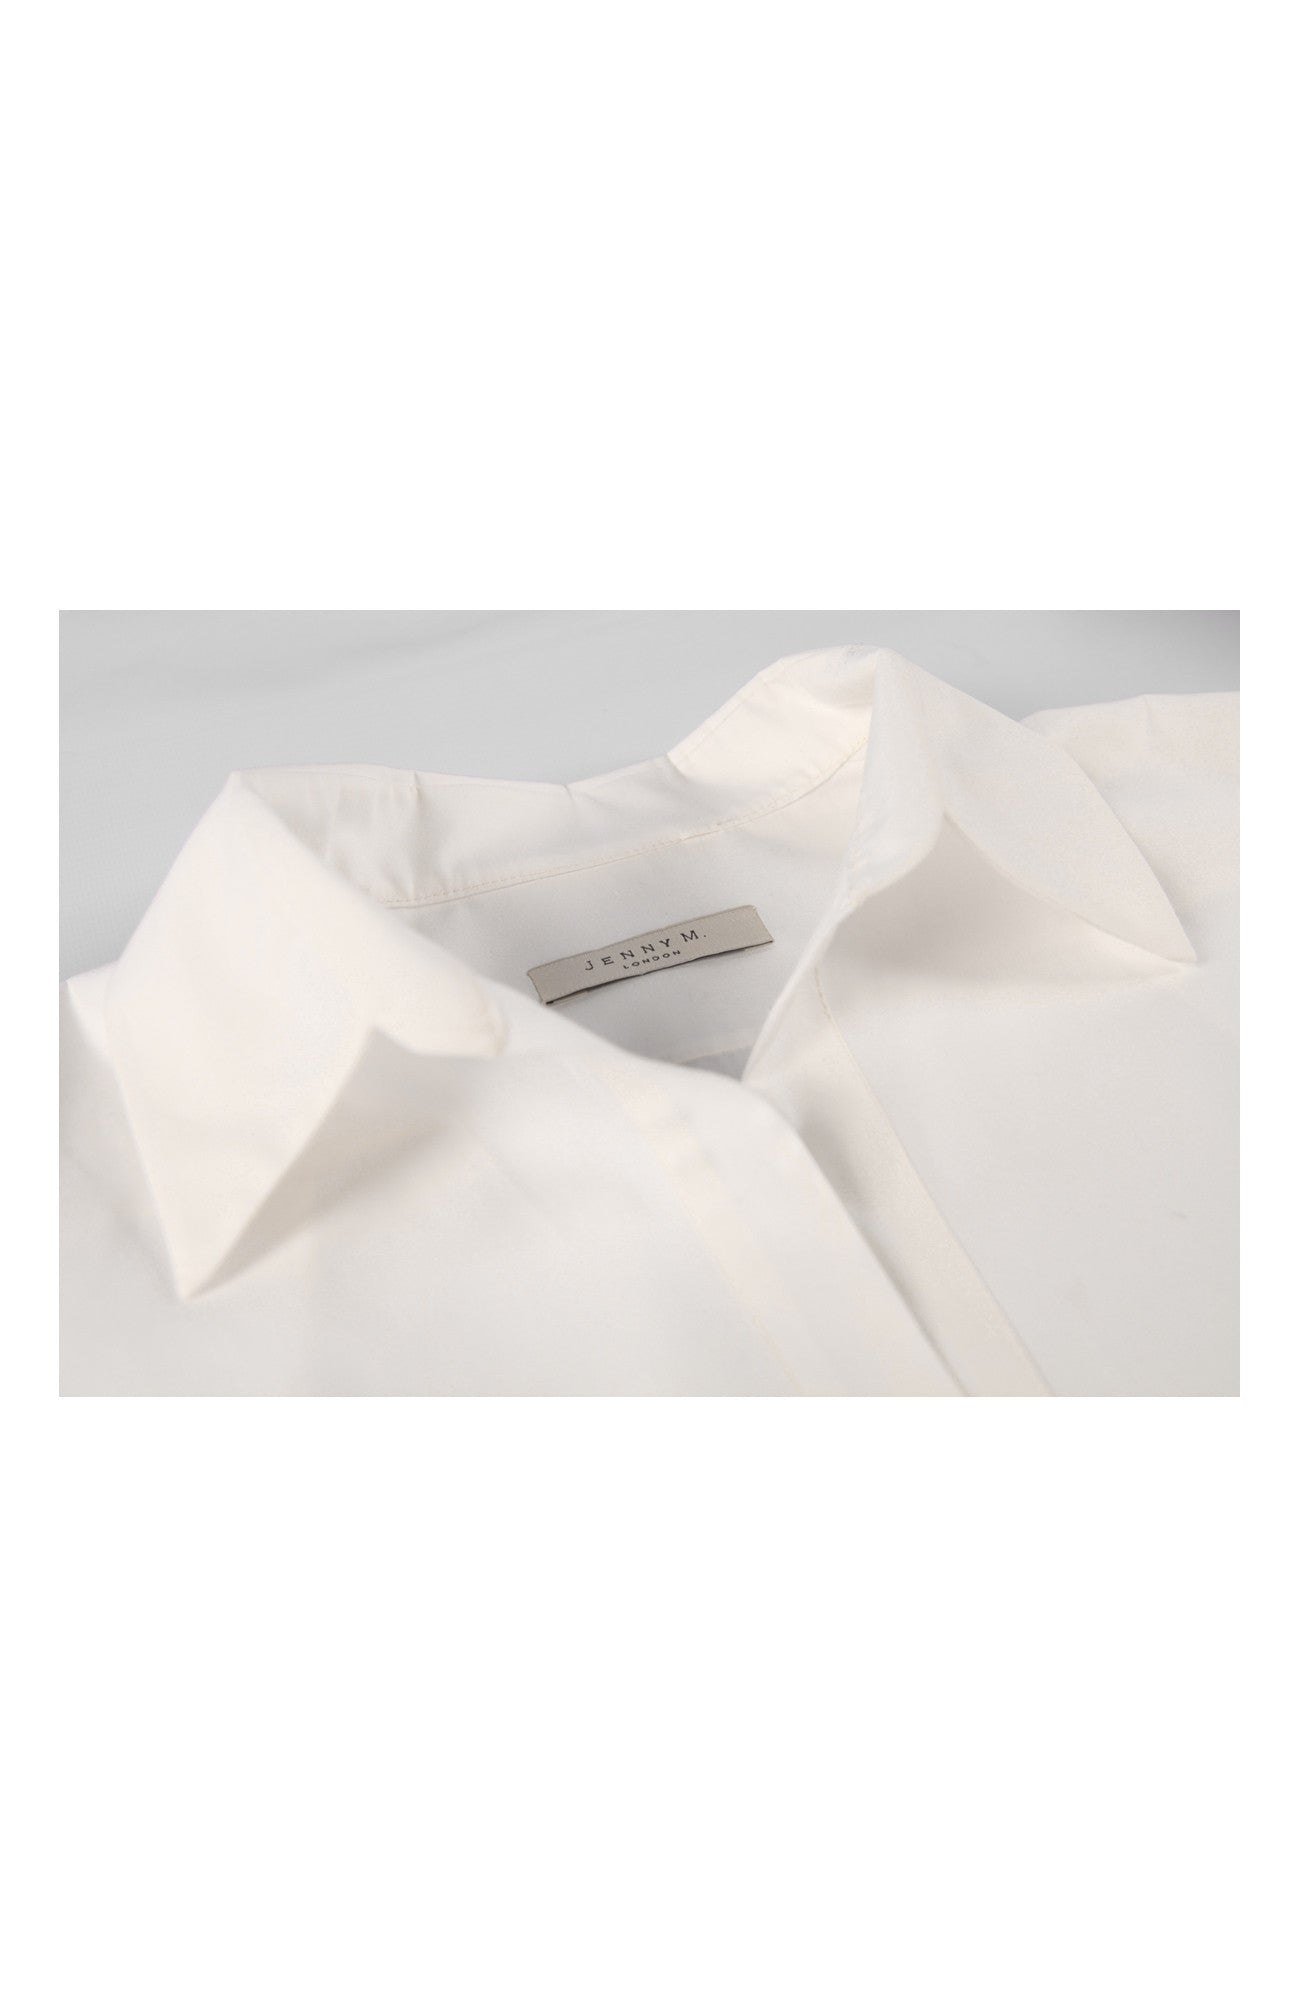 Long Shirt White - Jenny M. London  - 8